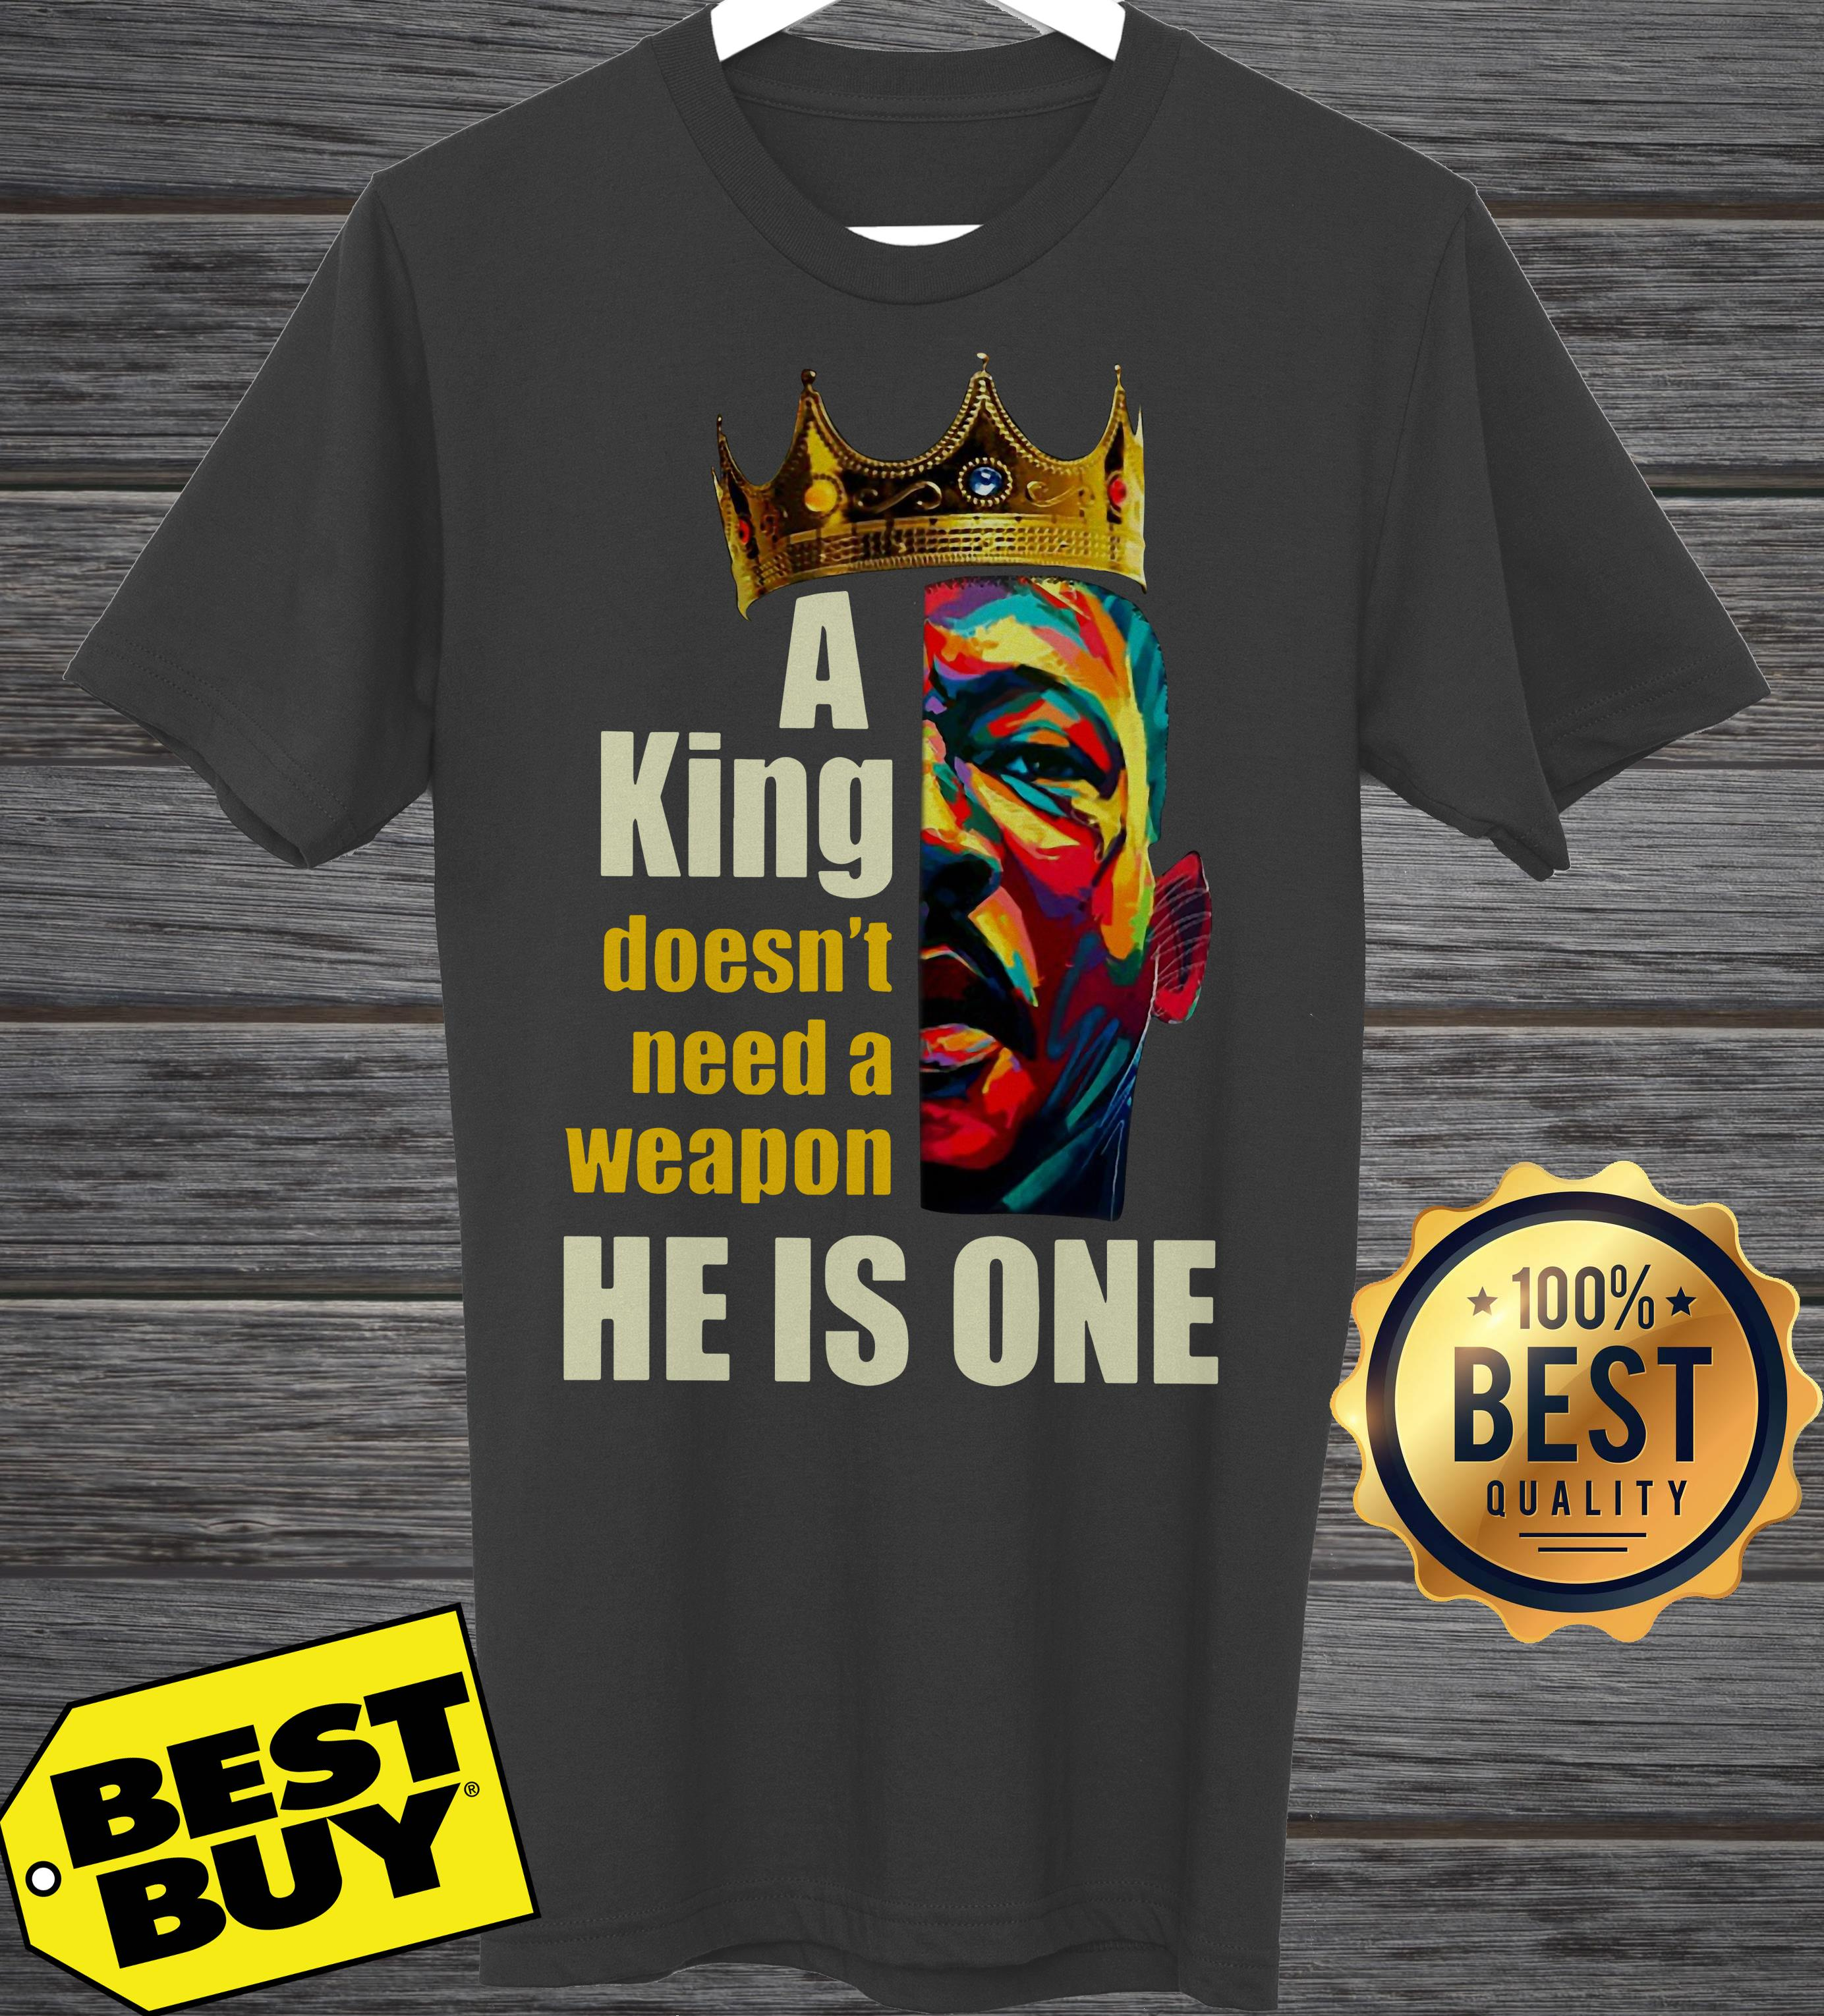 Martin Luther King A Doesn't Need A Weapon Shirt He I One ladies tee